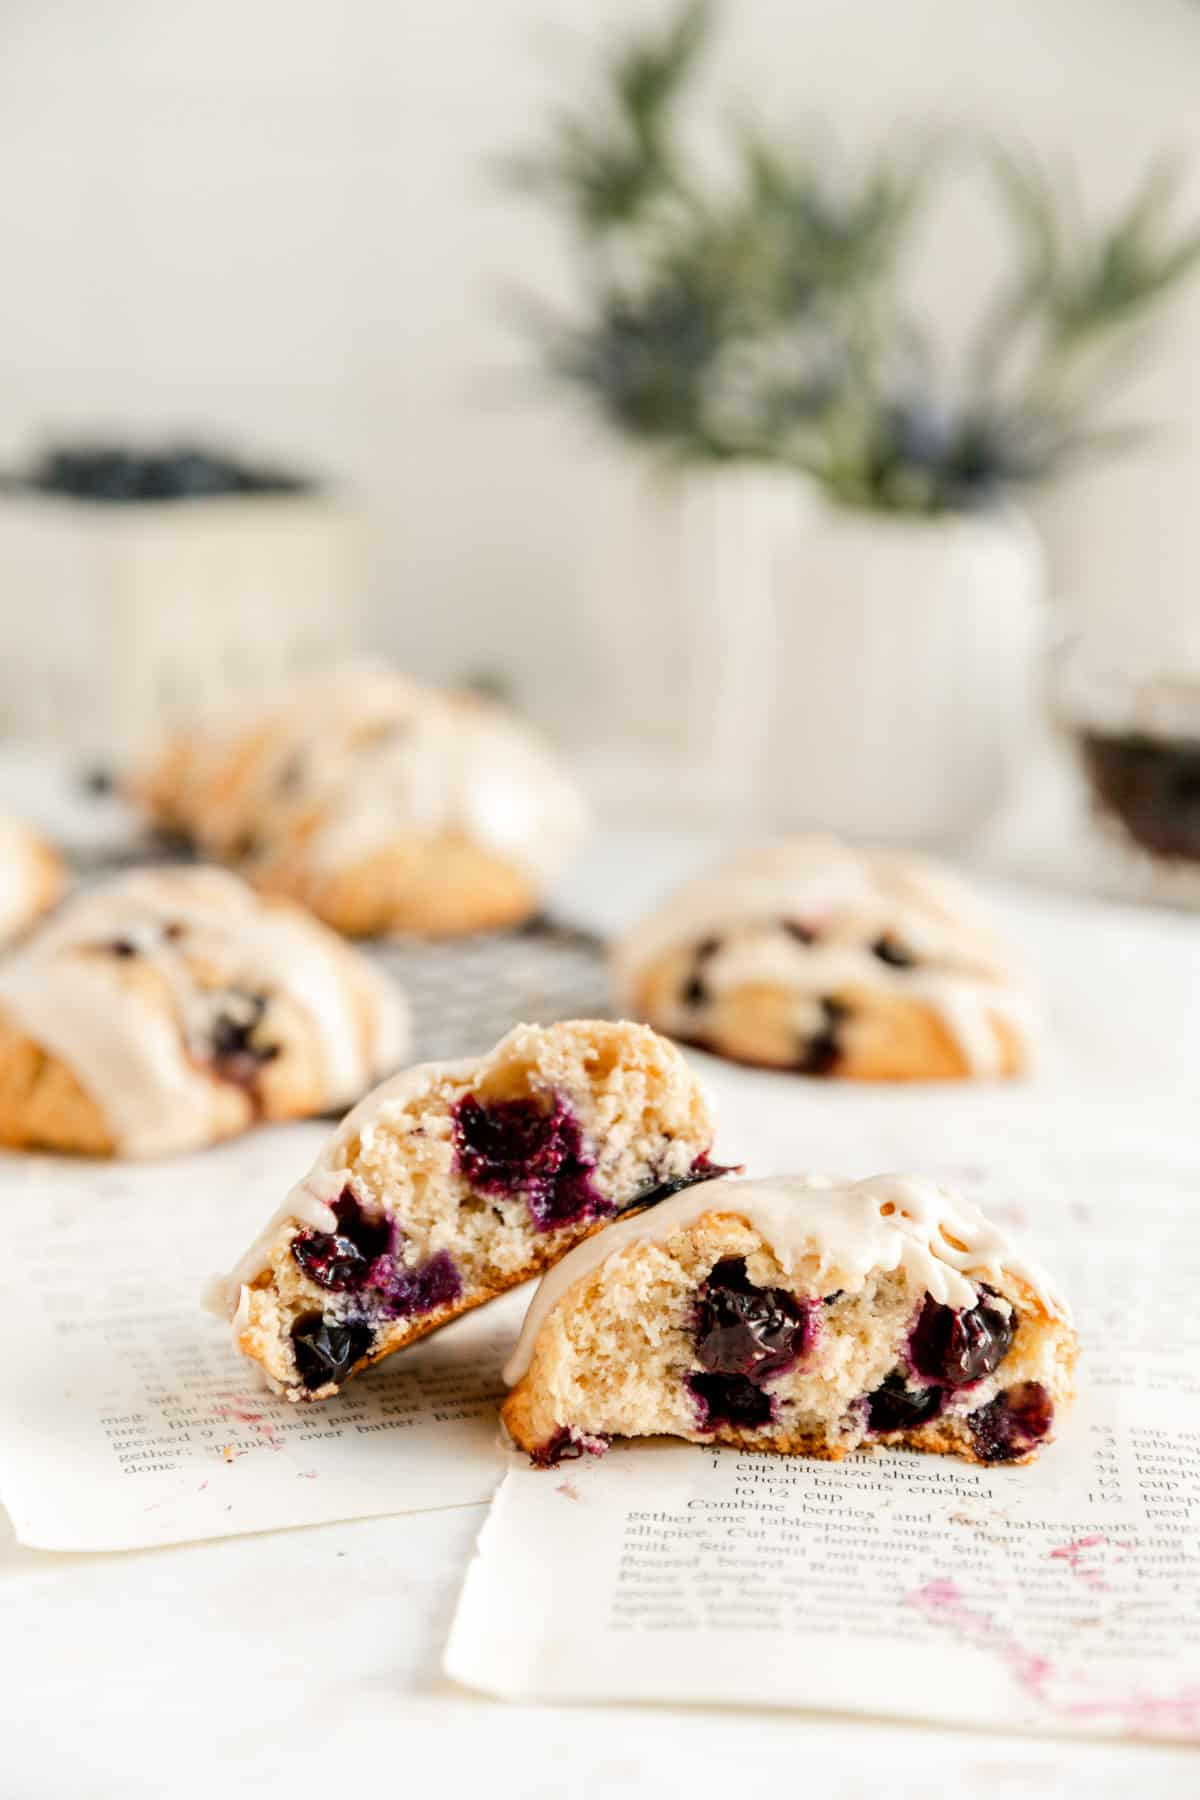 two stacked scone halves showing the inside filled with blueberries on recipe pages